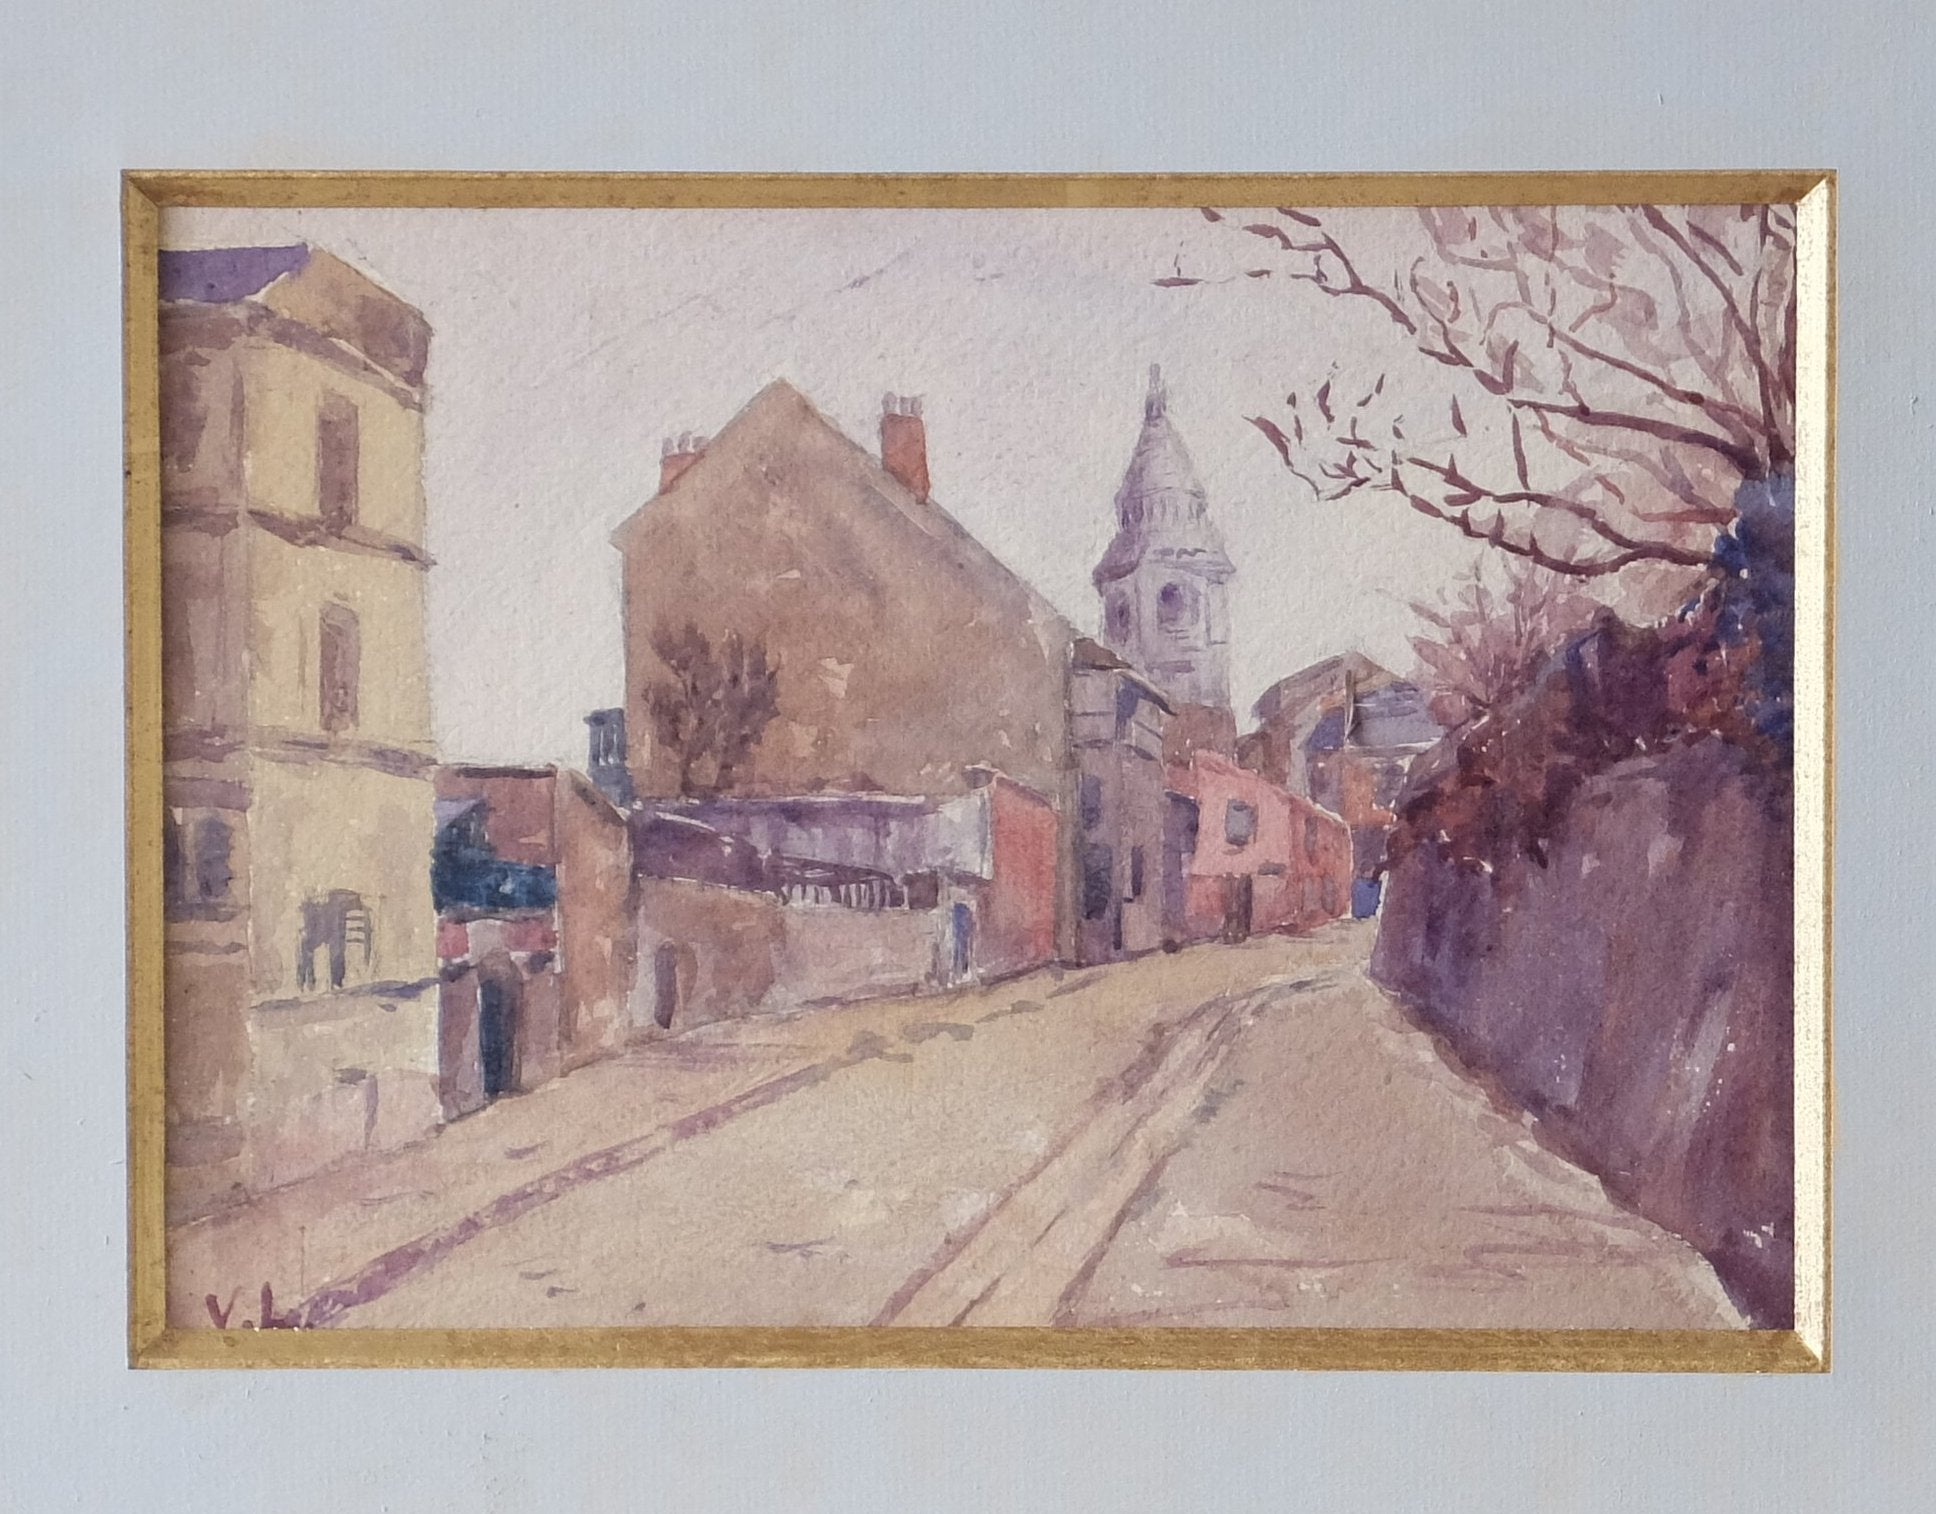 Original Paintings at Place Dauphine: Early twentieth century watercolor -- rue de l'Abreuvoir in Montmartre